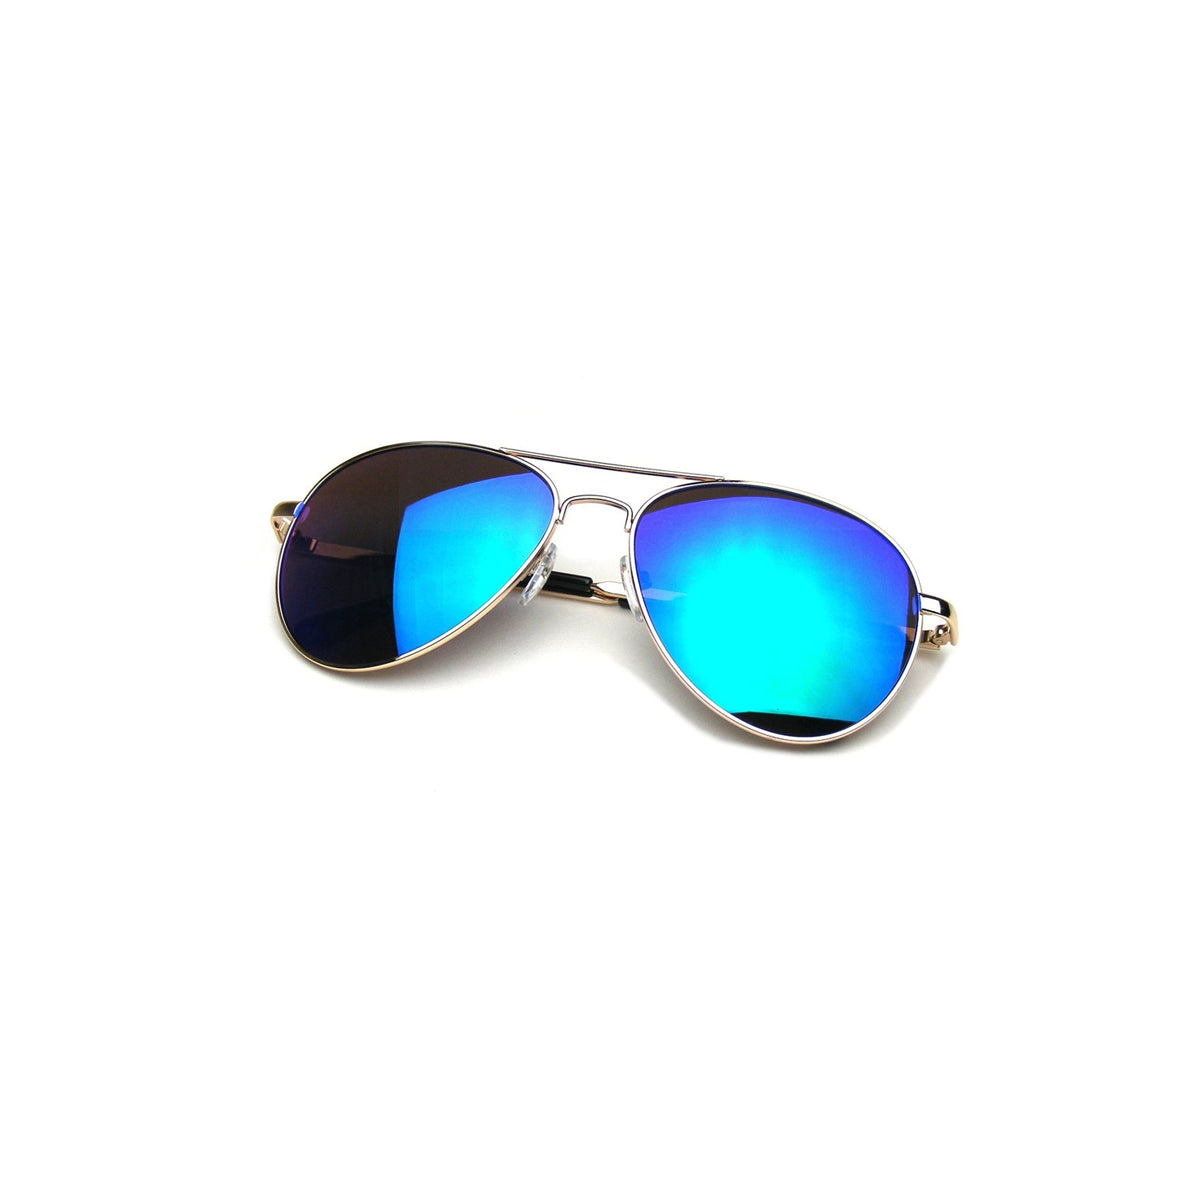 shopify-Vintage Style Aviator Mirrored Sunglasses - Silver, Blue, Black, Pink or Bronze-5